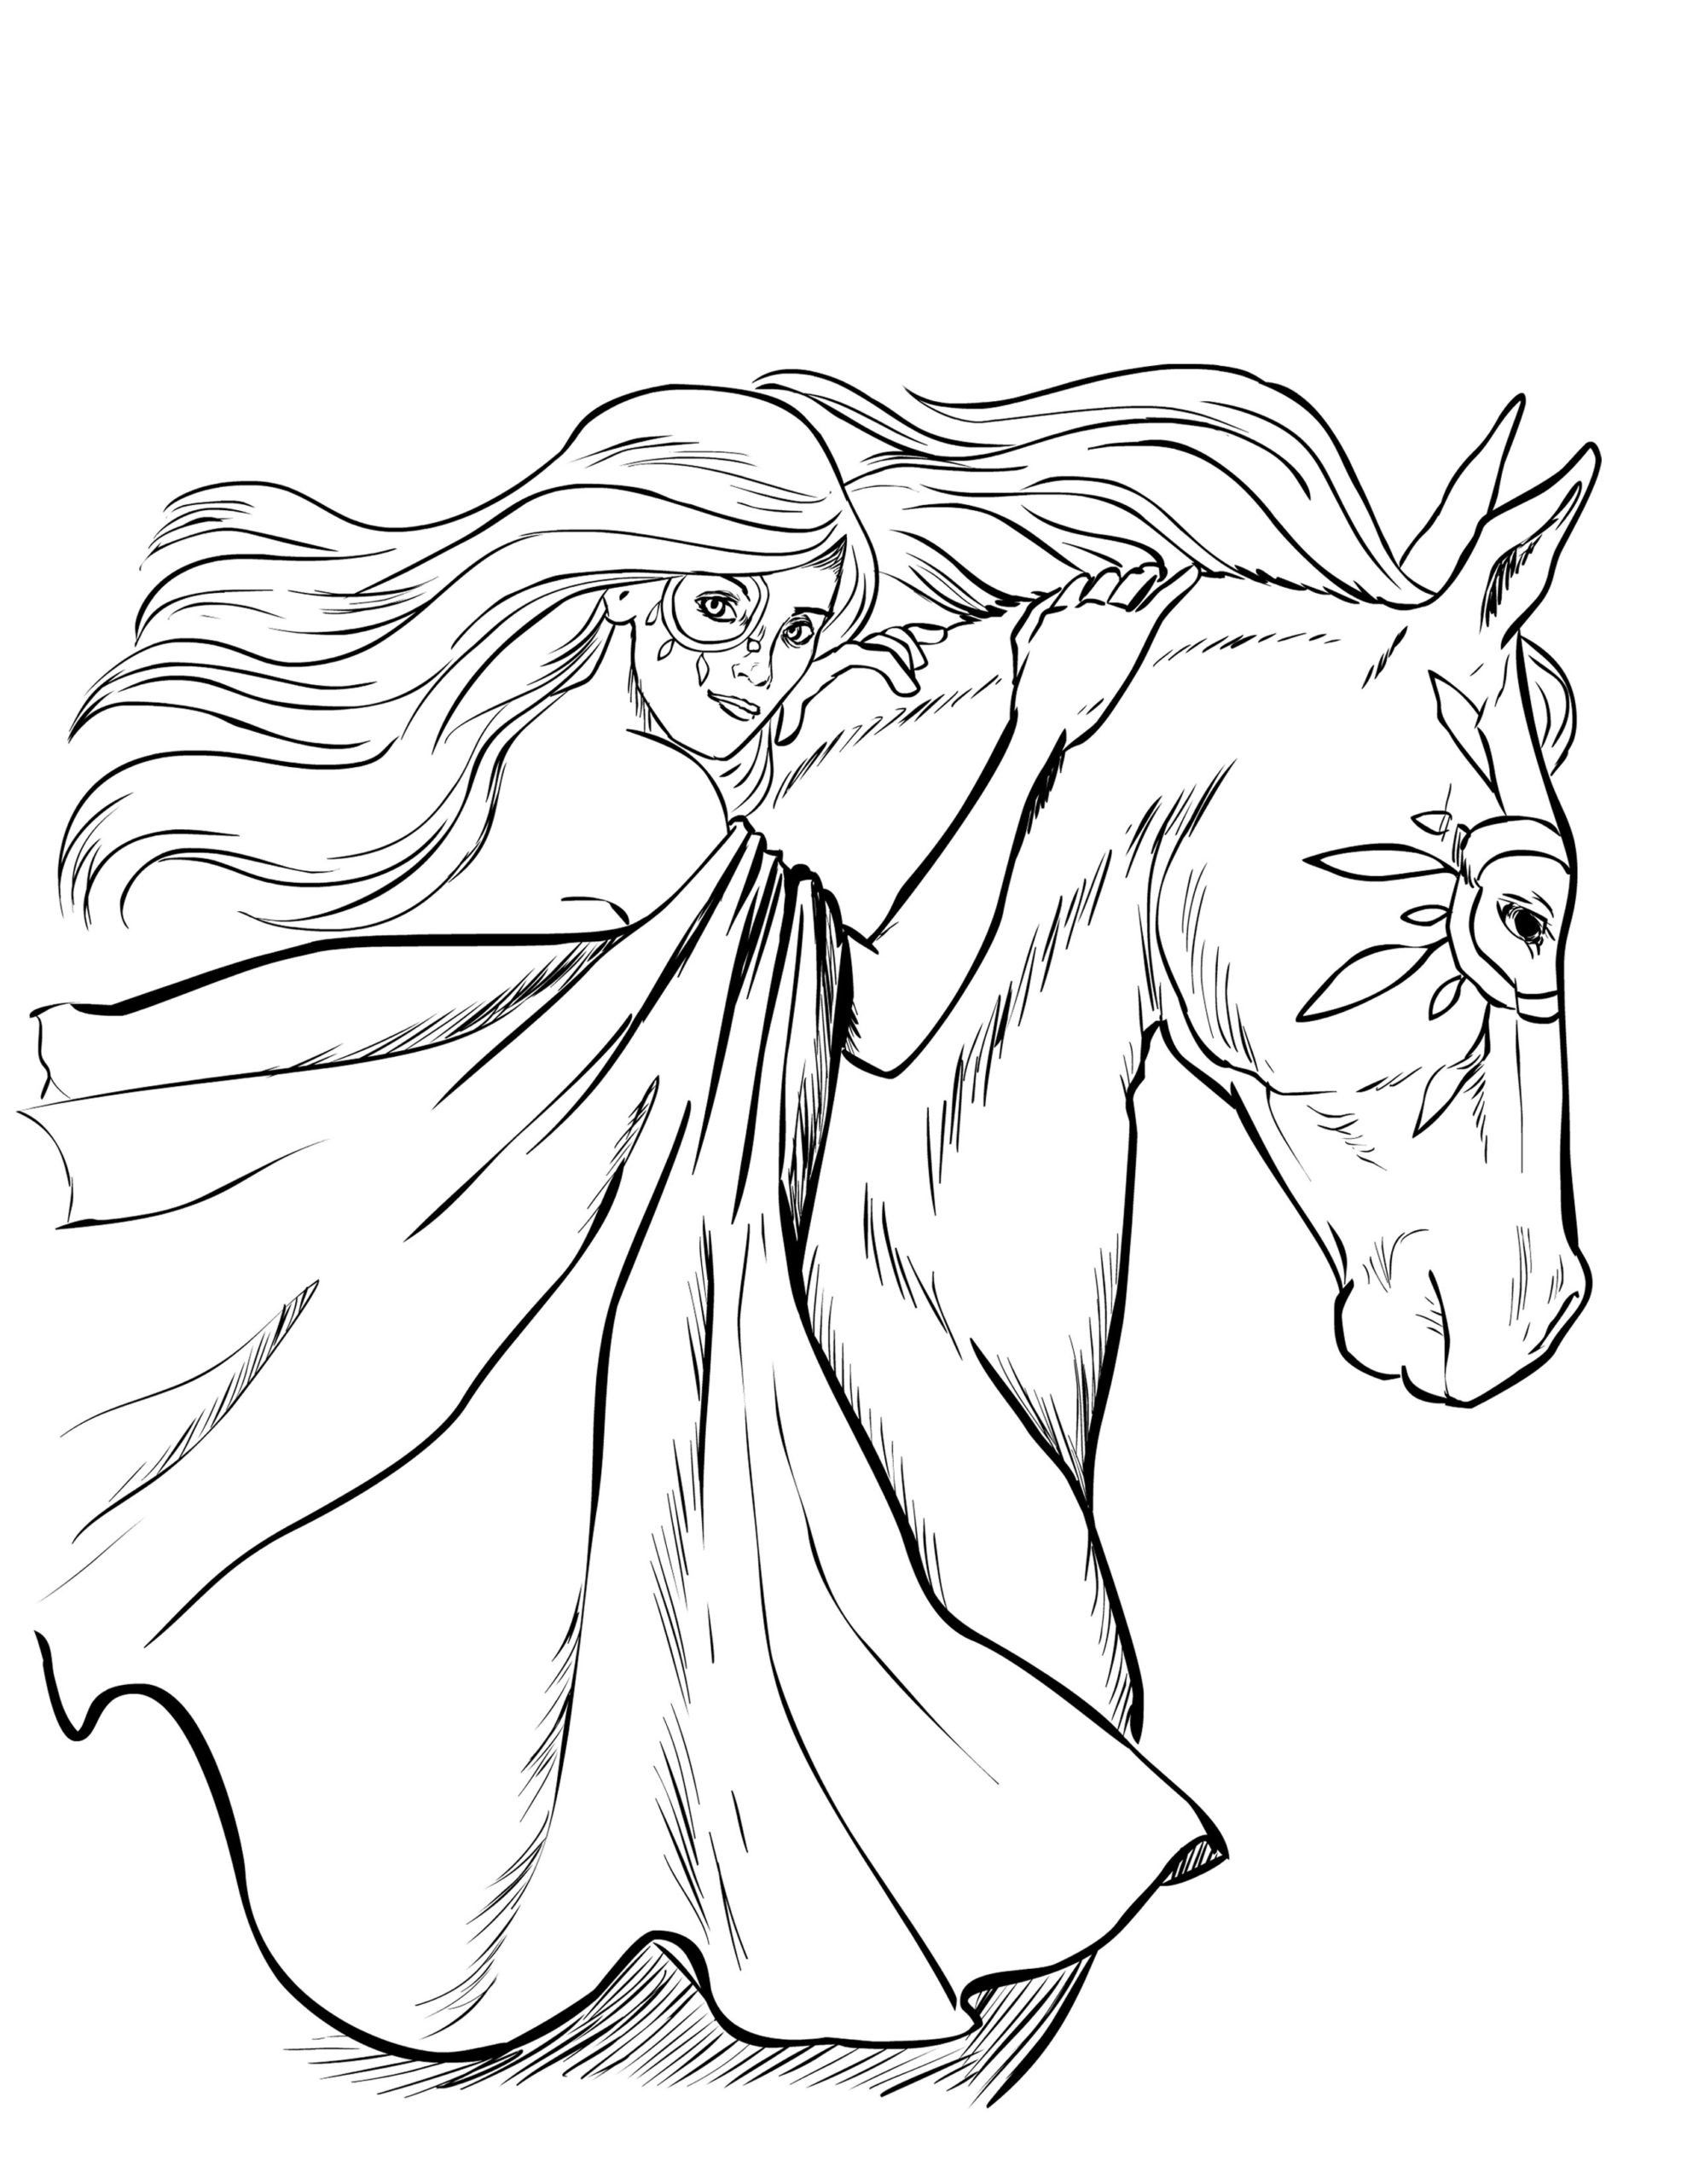 Girl Horse Coloring Page Youngandtae Com Horse Coloring Pages Horse Coloring Animal Coloring Pages